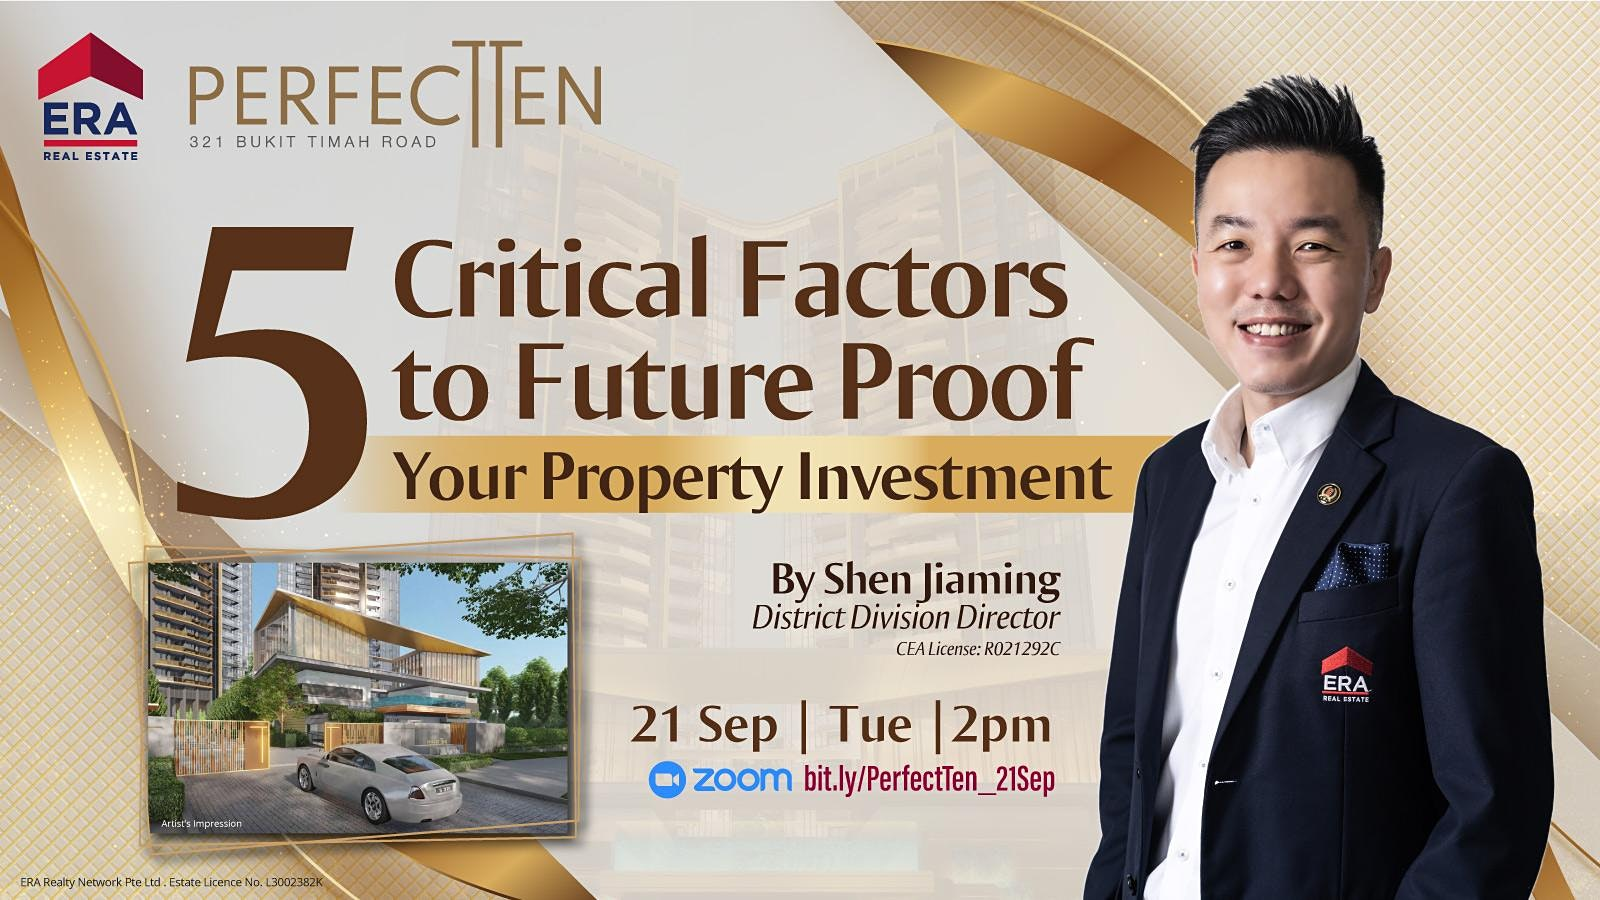 5 Critical Factors To Future Proof Your Property Investment (Perfect Ten)